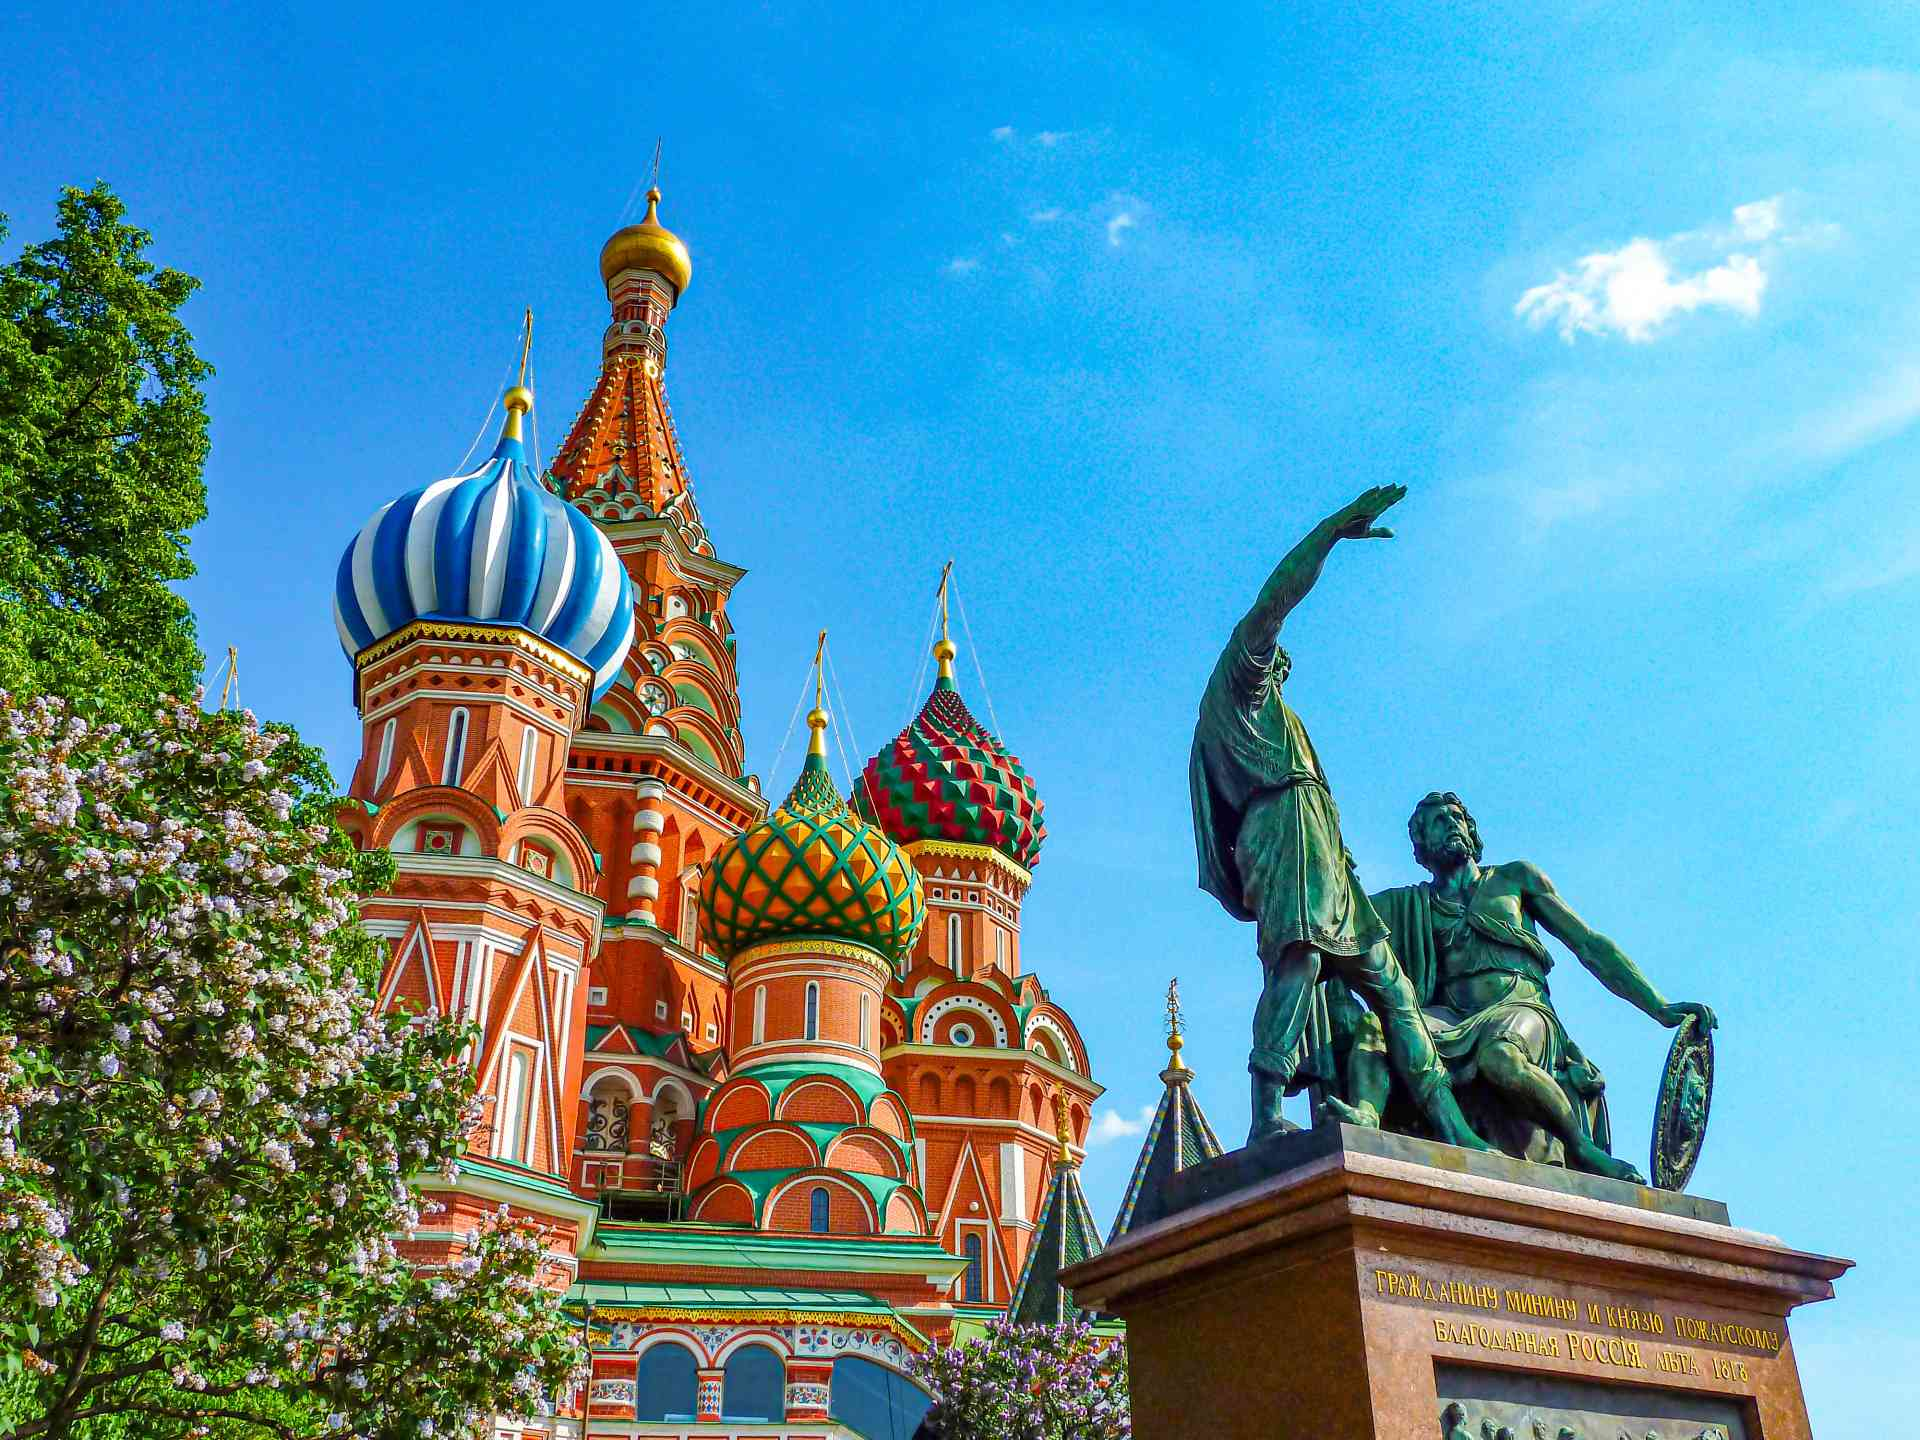 St Basil's Cathedral, Moscow, Russia by Dennis Bunnik